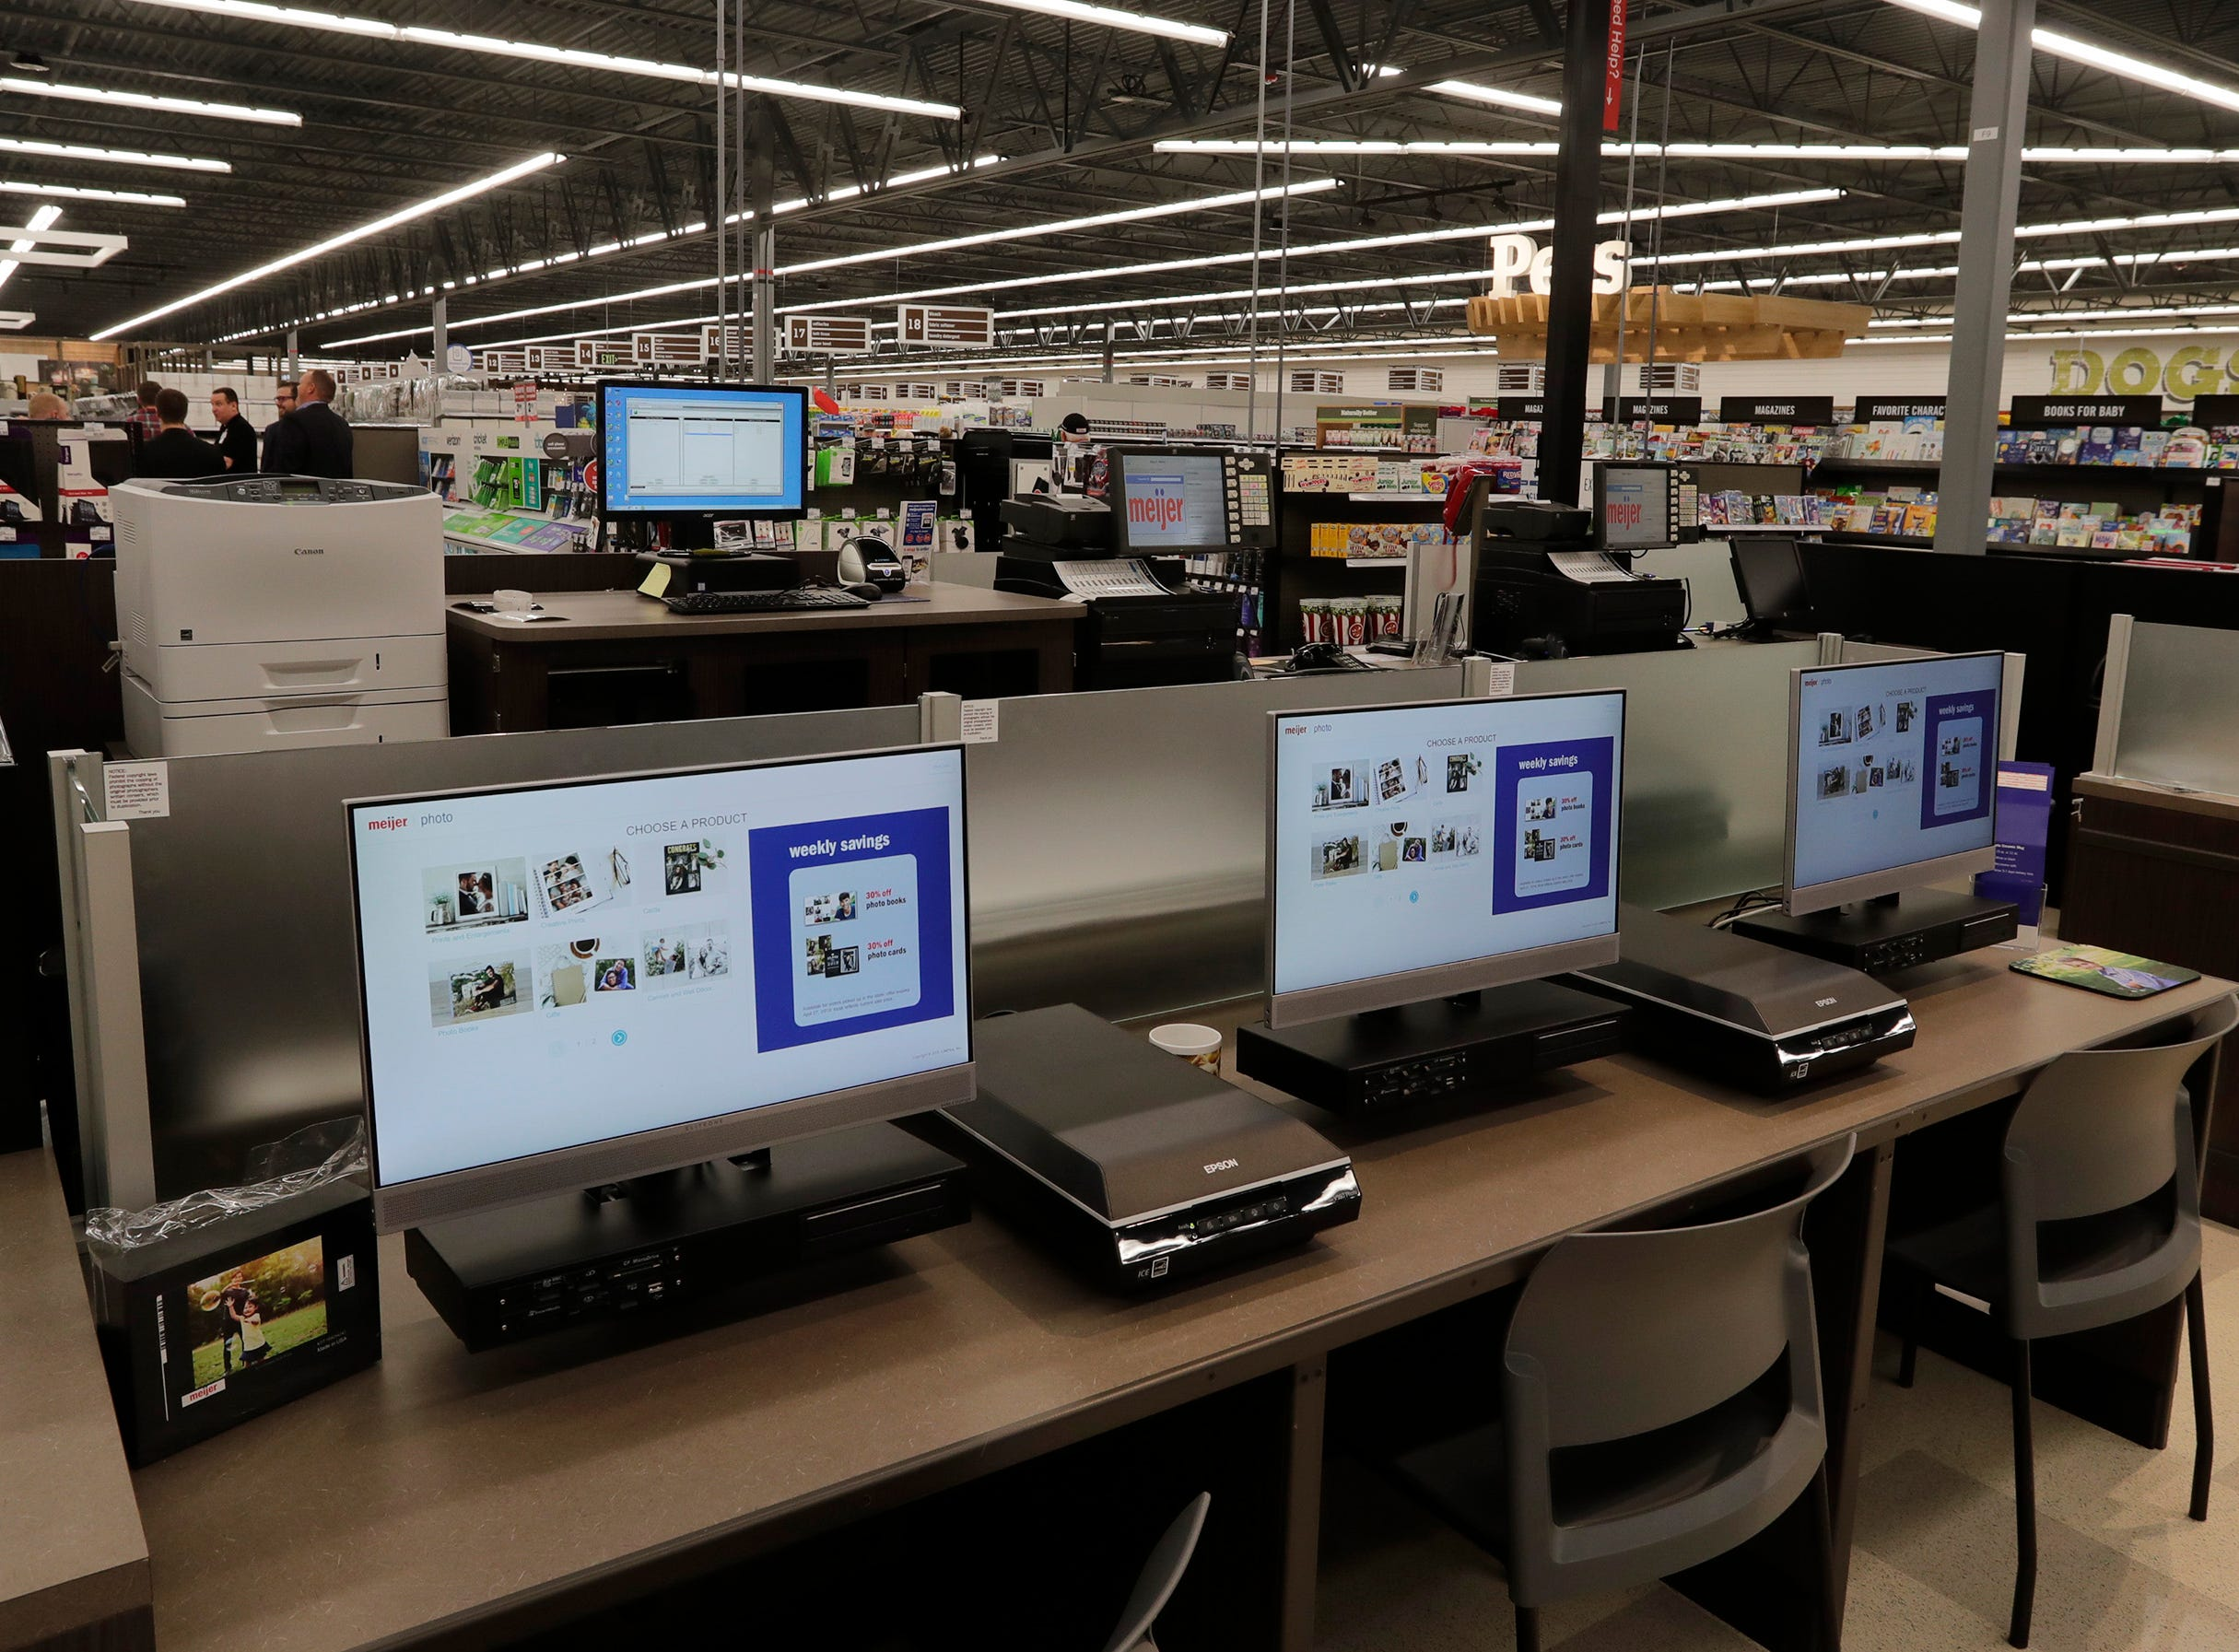 The photo reprint area at Meijer, Thursday April 25, 2019, in Sheboygan, Wis. The 155,000-square-foot supercenter has 300 employees on opening day.